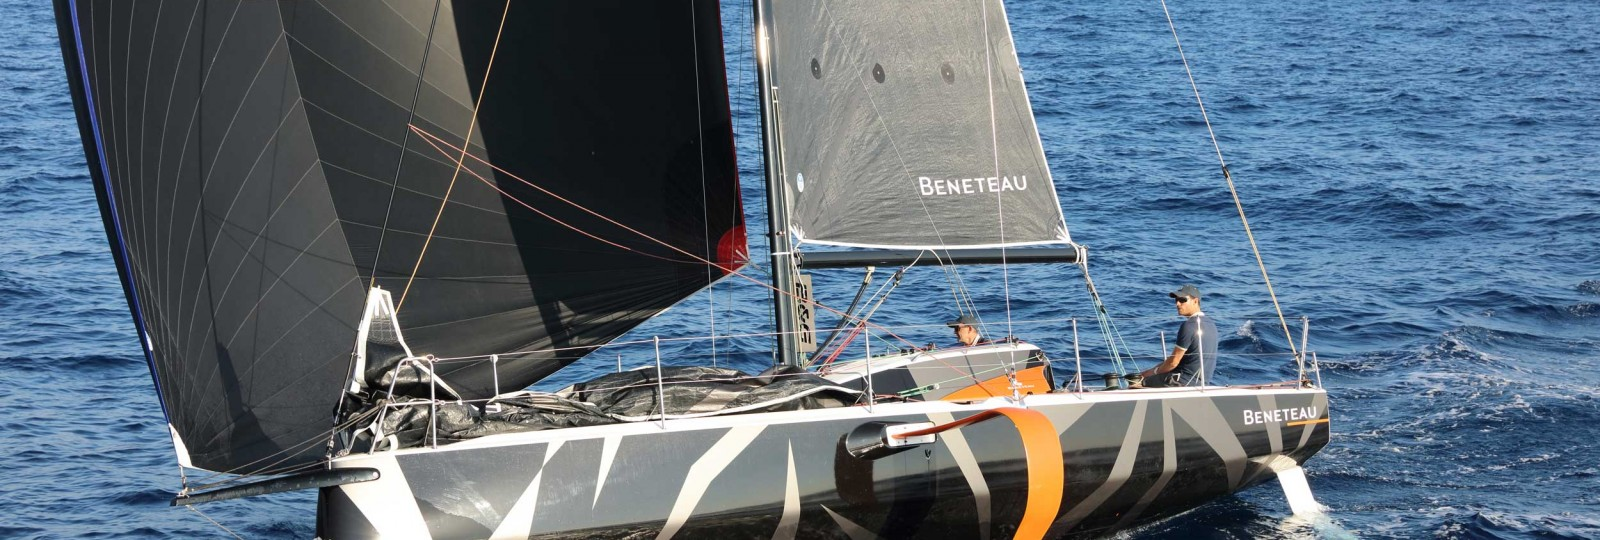 High Performance Sails - Beneteau Figaro 3 - Ancasta International Boat Sales